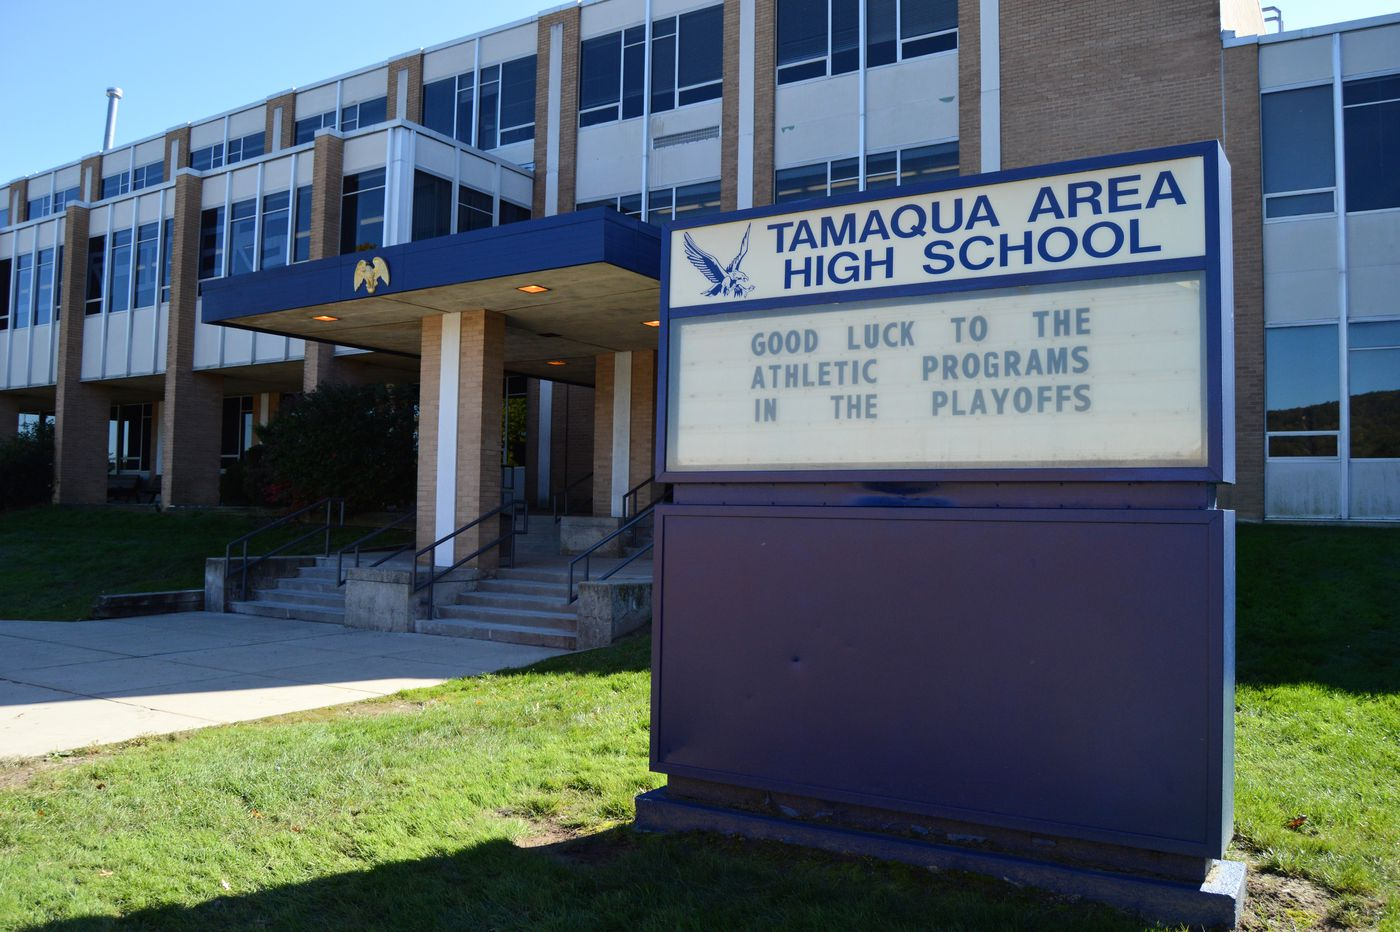 Union sues Tamaqua school district over armed teachers policy